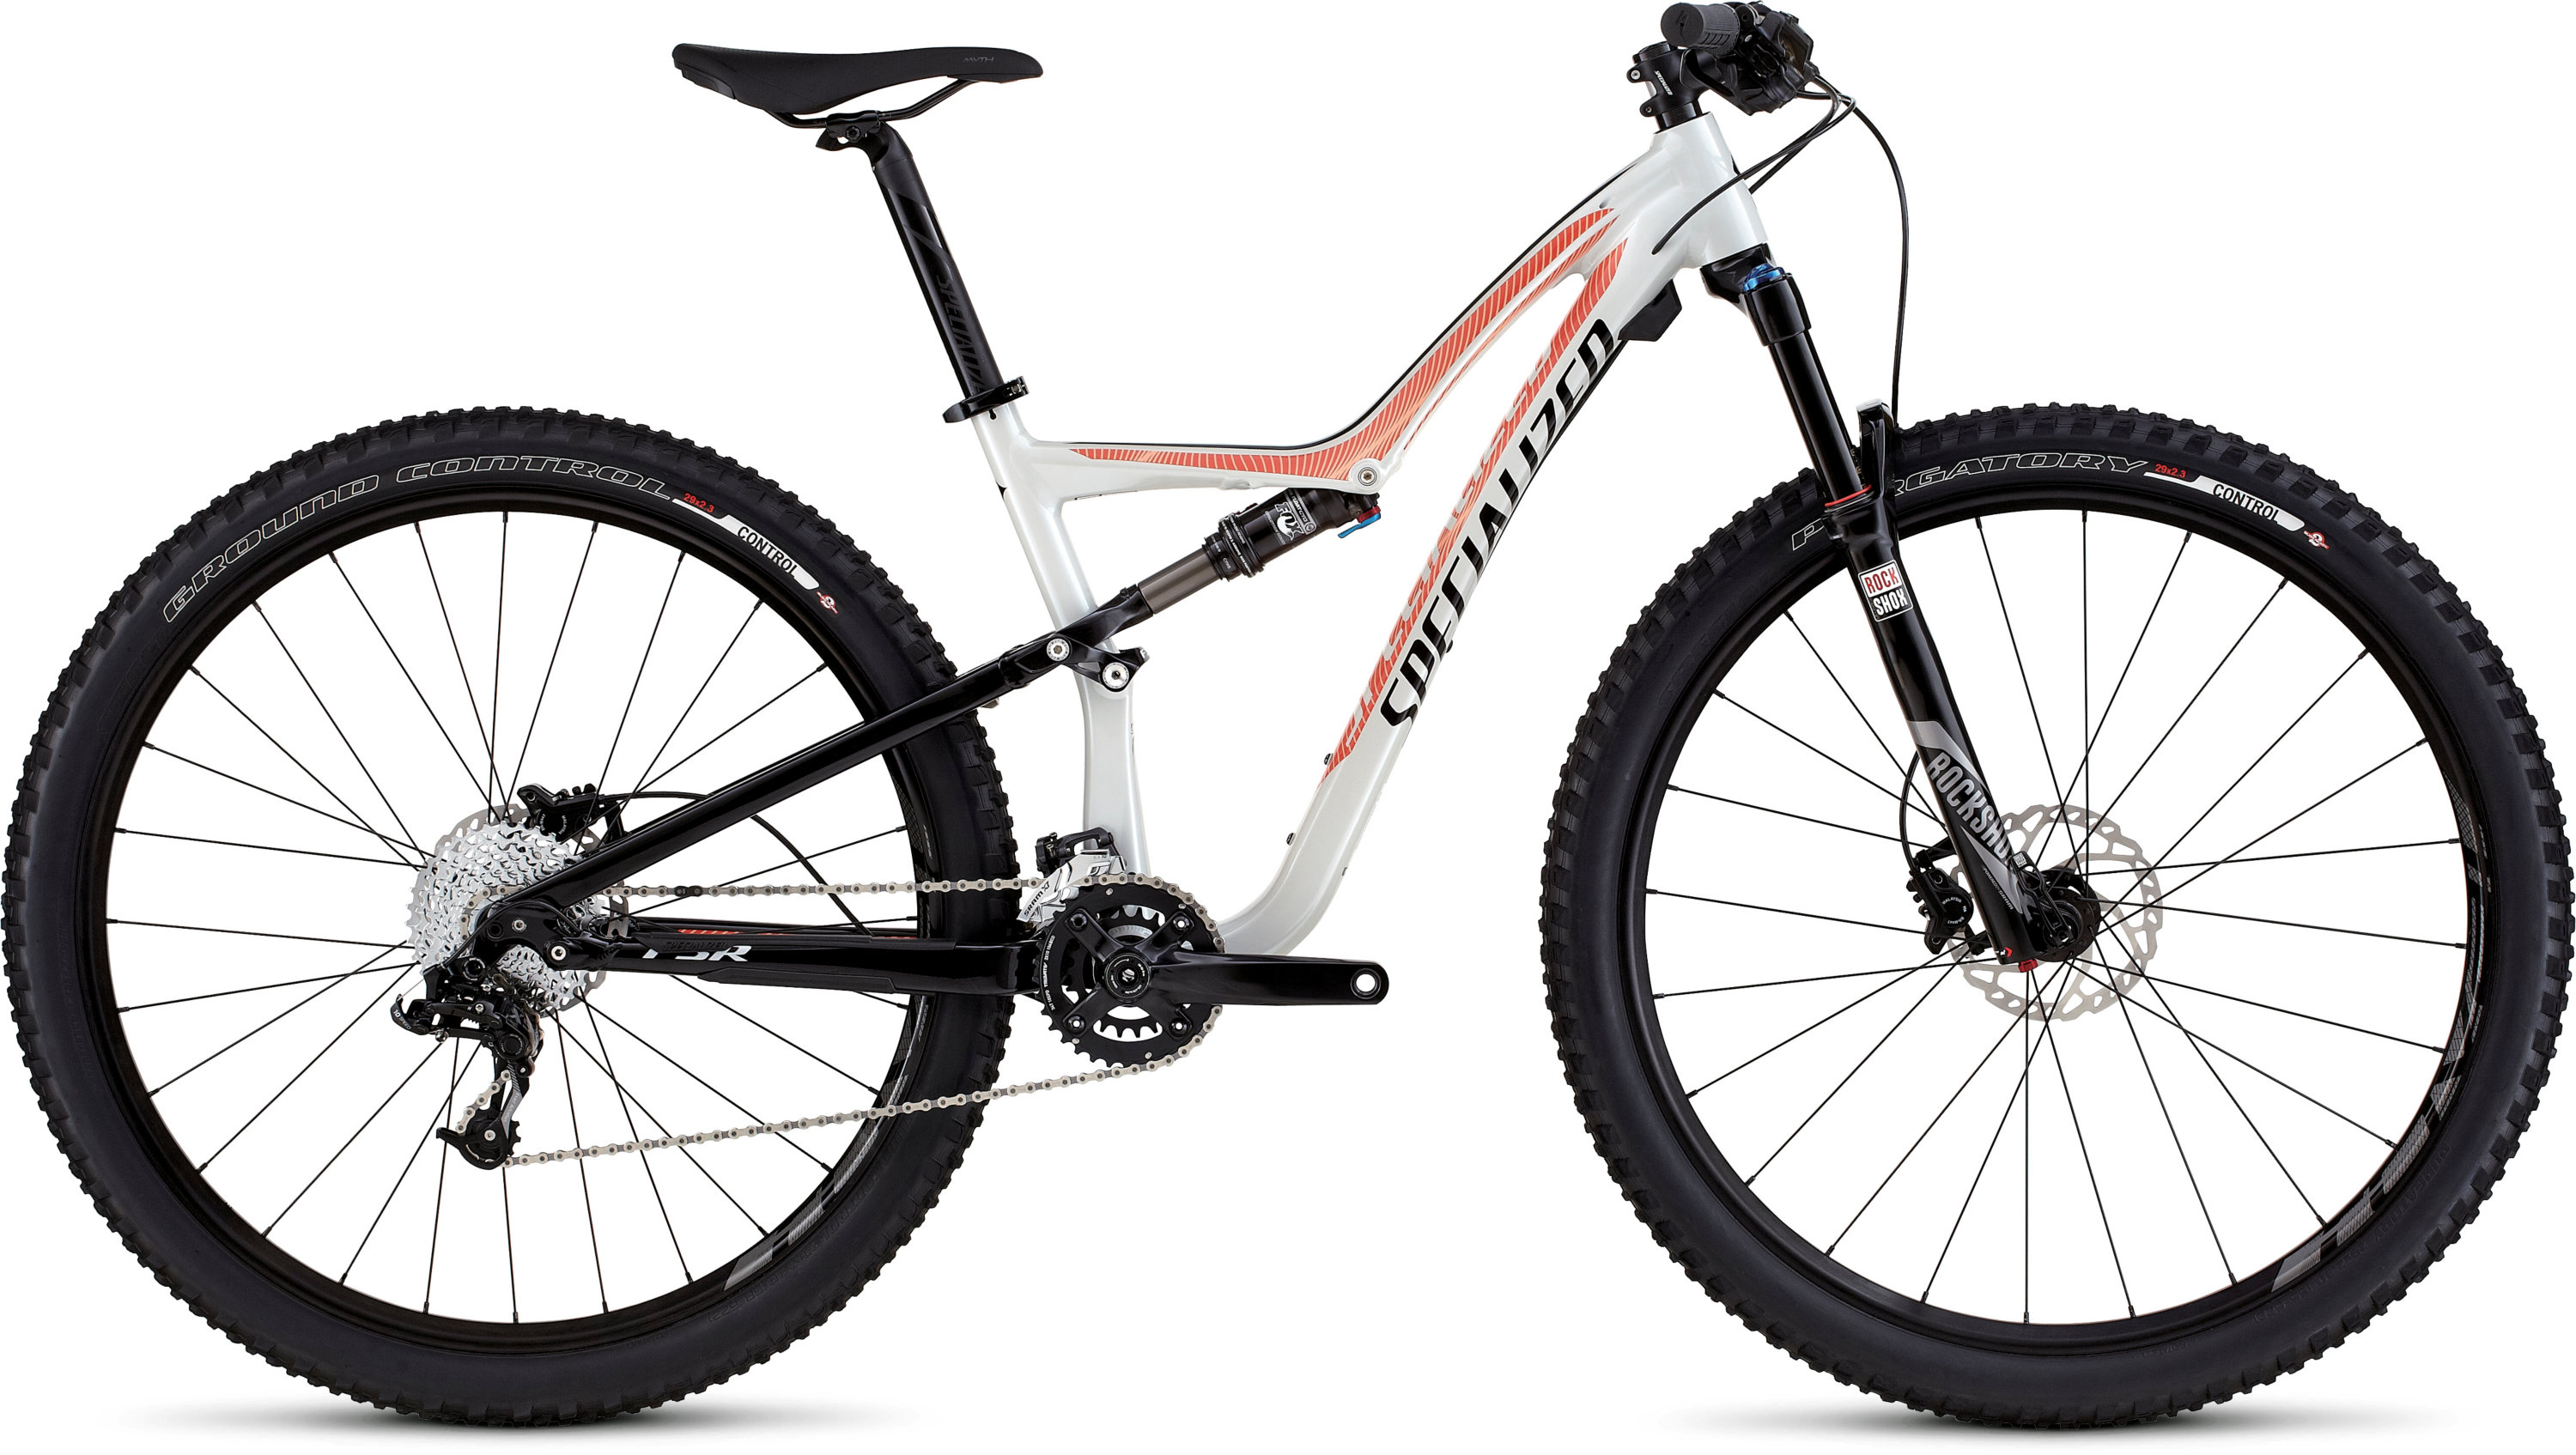 SPECIALIZED RUMOR FSR COMP 29 DRTYWHT/BLK/CRL S - schneider-sports